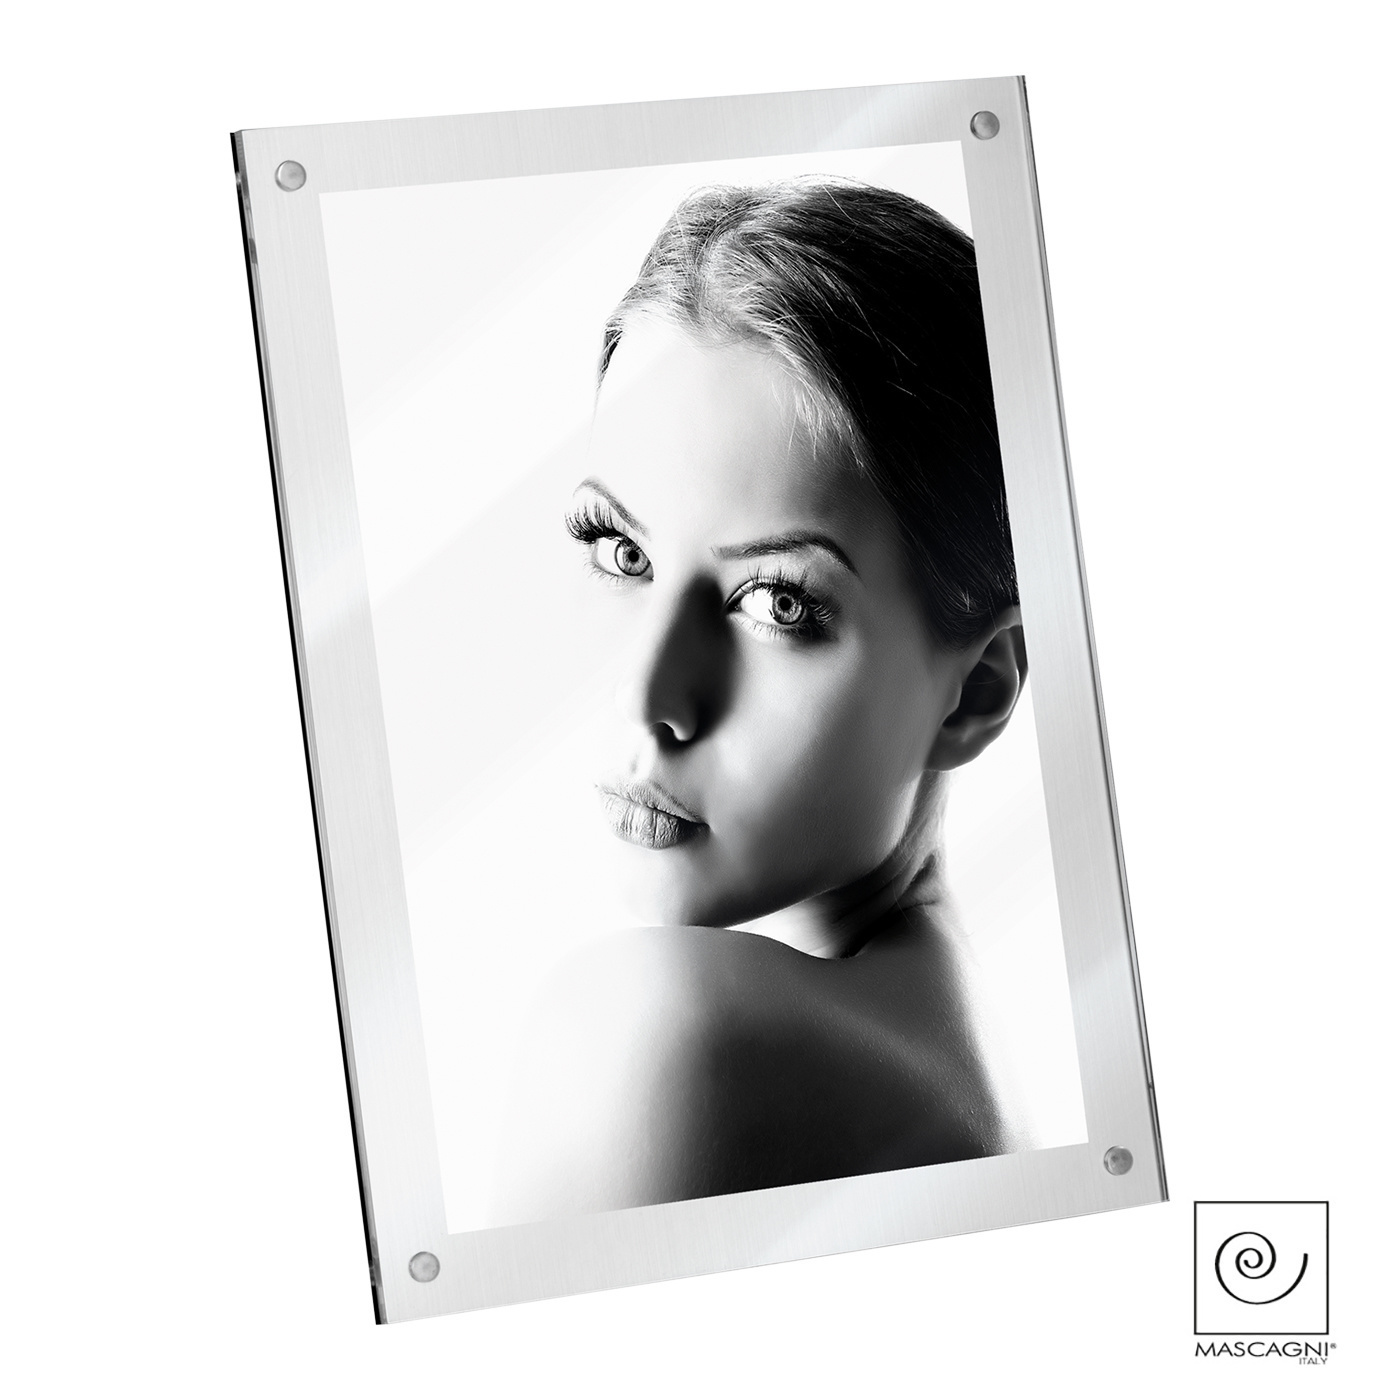 Art Mascagni A1038 PHOTO FRAME 13X18 - COL. SILVER